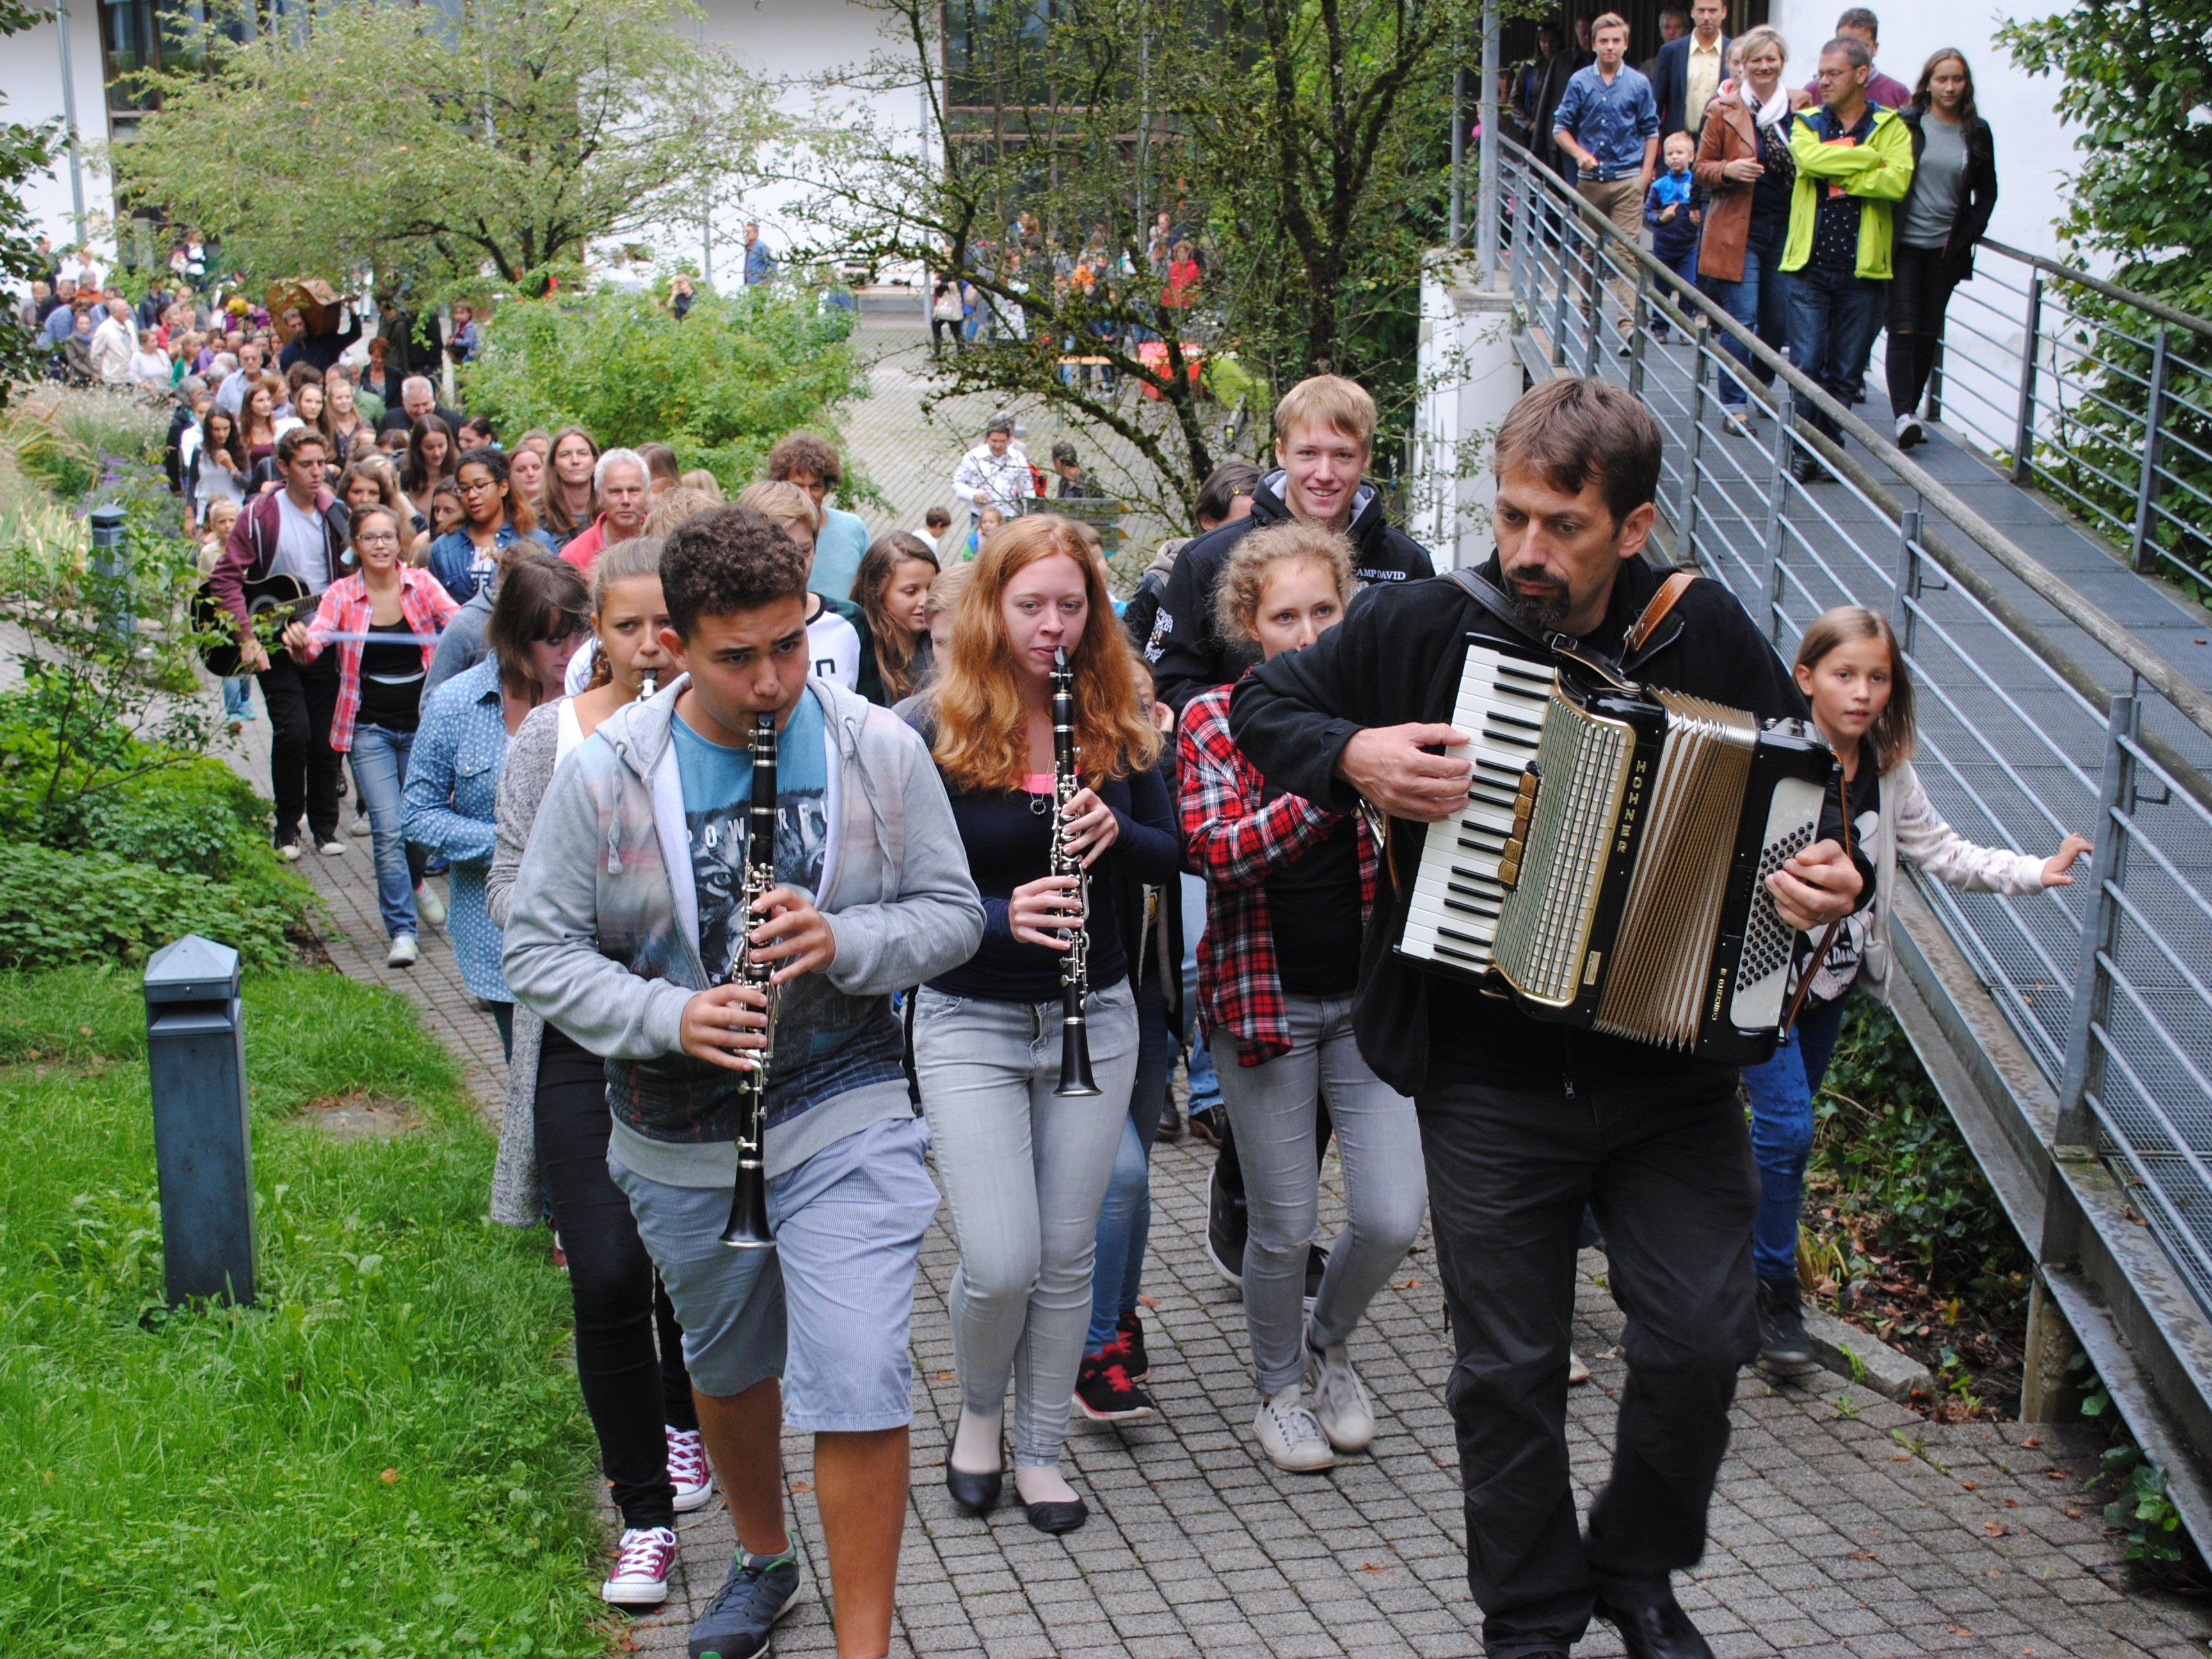 Musiksommerwoche in St. Arbogast